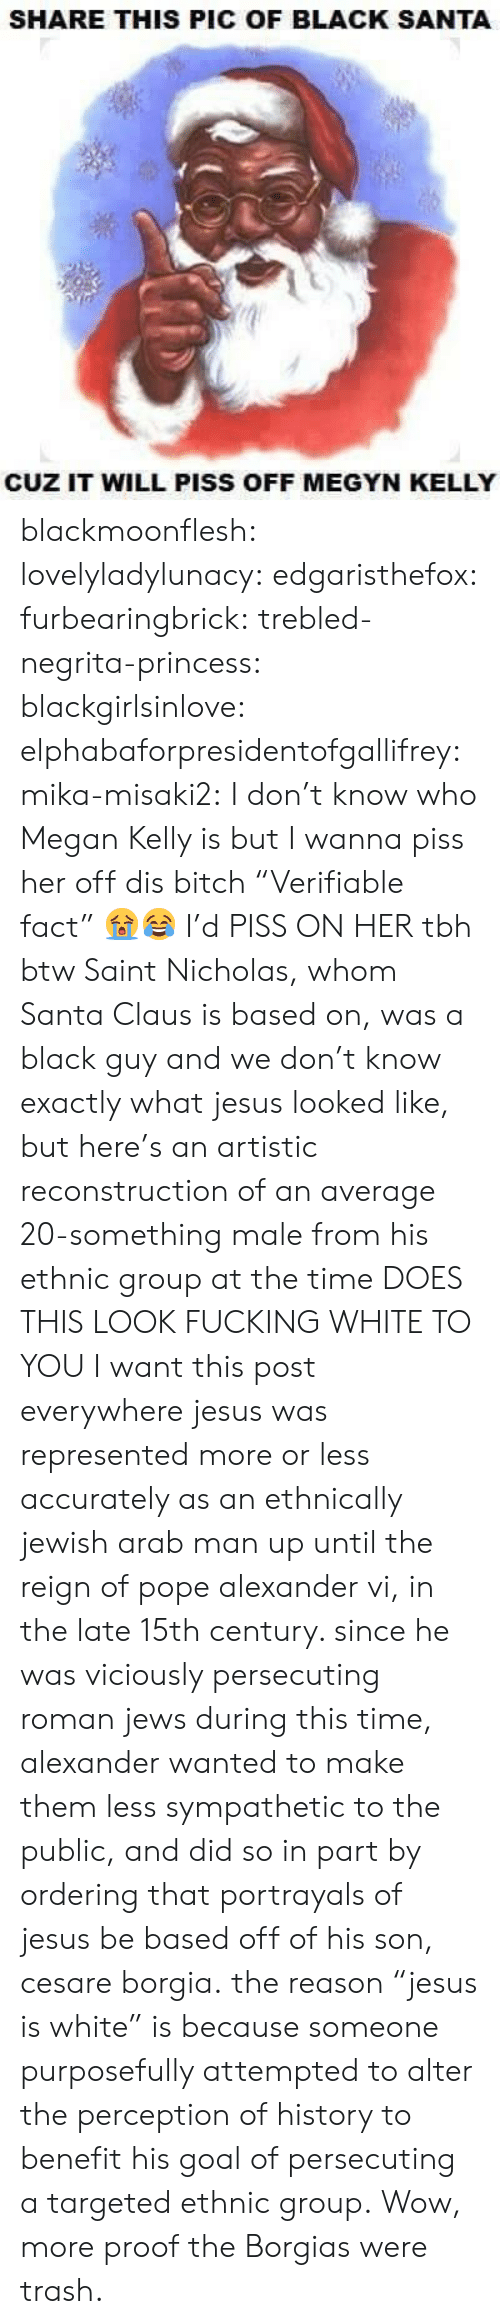 """reign: SHARE THIS PIC OF BLACK SANTA  CUZ IT WILL PISS OFF MEGYN KELLY blackmoonflesh: lovelyladylunacy:  edgaristhefox:  furbearingbrick:  trebled-negrita-princess:  blackgirlsinlove:  elphabaforpresidentofgallifrey:  mika-misaki2:  I don't know who Megan Kelly is but I wanna piss her off  dis bitch   """"Verifiable fact"""" 😭😂  I'd PISS ON HER tbh  btw Saint Nicholas, whom Santa Clausis based on, was a black guy and we don't know exactly what jesus looked like, but here's an artistic reconstruction of an average 20-something male from his ethnic group at the time DOES THIS LOOK FUCKING WHITE TO YOU  I want this post everywhere  jesuswas represented more or less accurately as an ethnically jewish arab man up until the reign of pope alexander vi, in the late 15th century. since he was viciously persecuting roman jews during this time, alexander wanted to make them less sympathetic to the public, and did so in part by ordering that portrayals of jesus be based offof his son, cesareborgia. the reason""""jesus is white"""" is because someone purposefully attempted to alter the perception of history to benefit his goal of persecuting a targeted ethnic group.  Wow, more proof the Borgias were trash."""